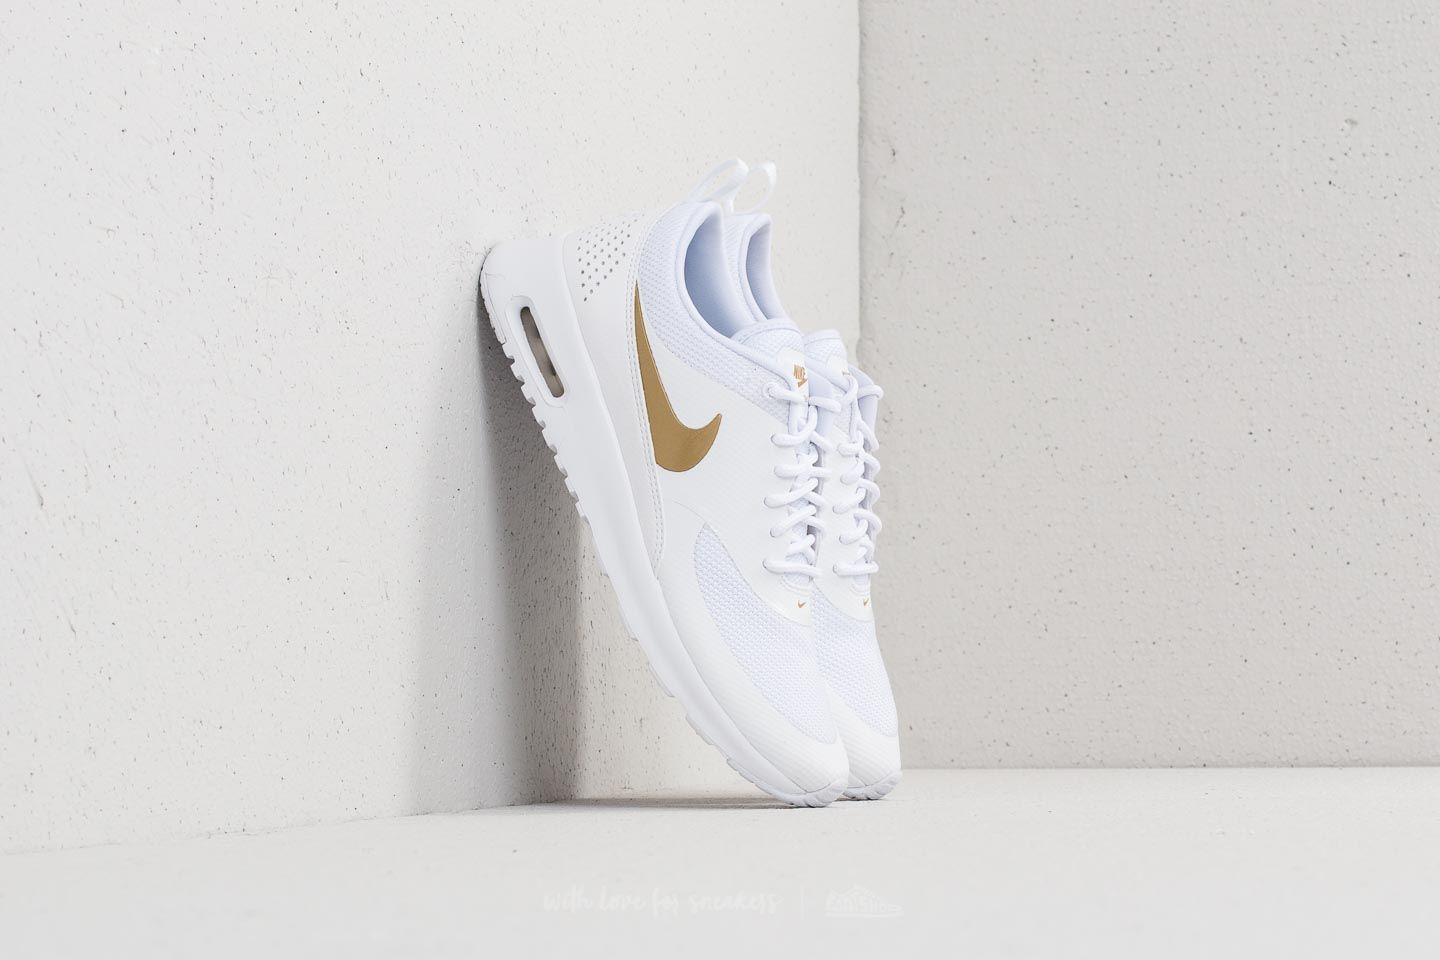 c89dbf01a Nike Wmns Air Max Thea J White  Metallic Gold  White